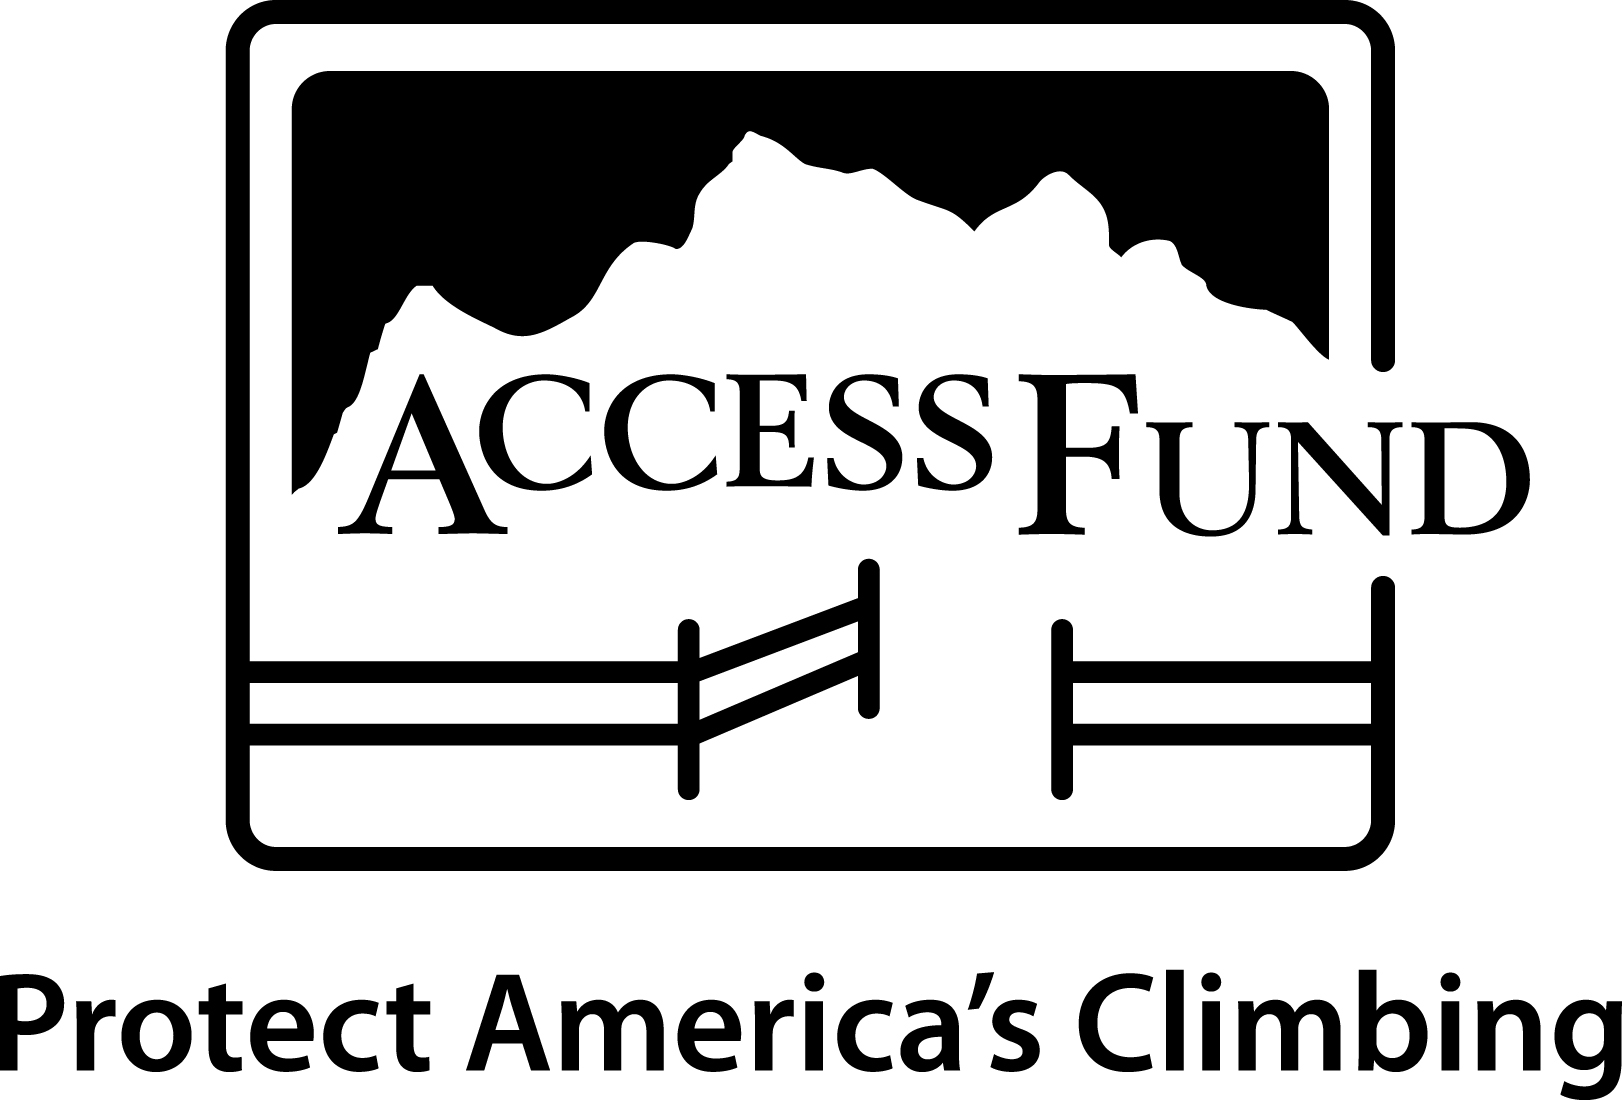 Access Fund Donor - If you've donated over $300 to the Access Fund in one calendar year, prove it, and when you book one night, we'll give you one night free, AND match your donation. If you haven't donated yet, please do so by clicking this link or the logo on here, and choosing Dave Cook as your Community Ambassador.